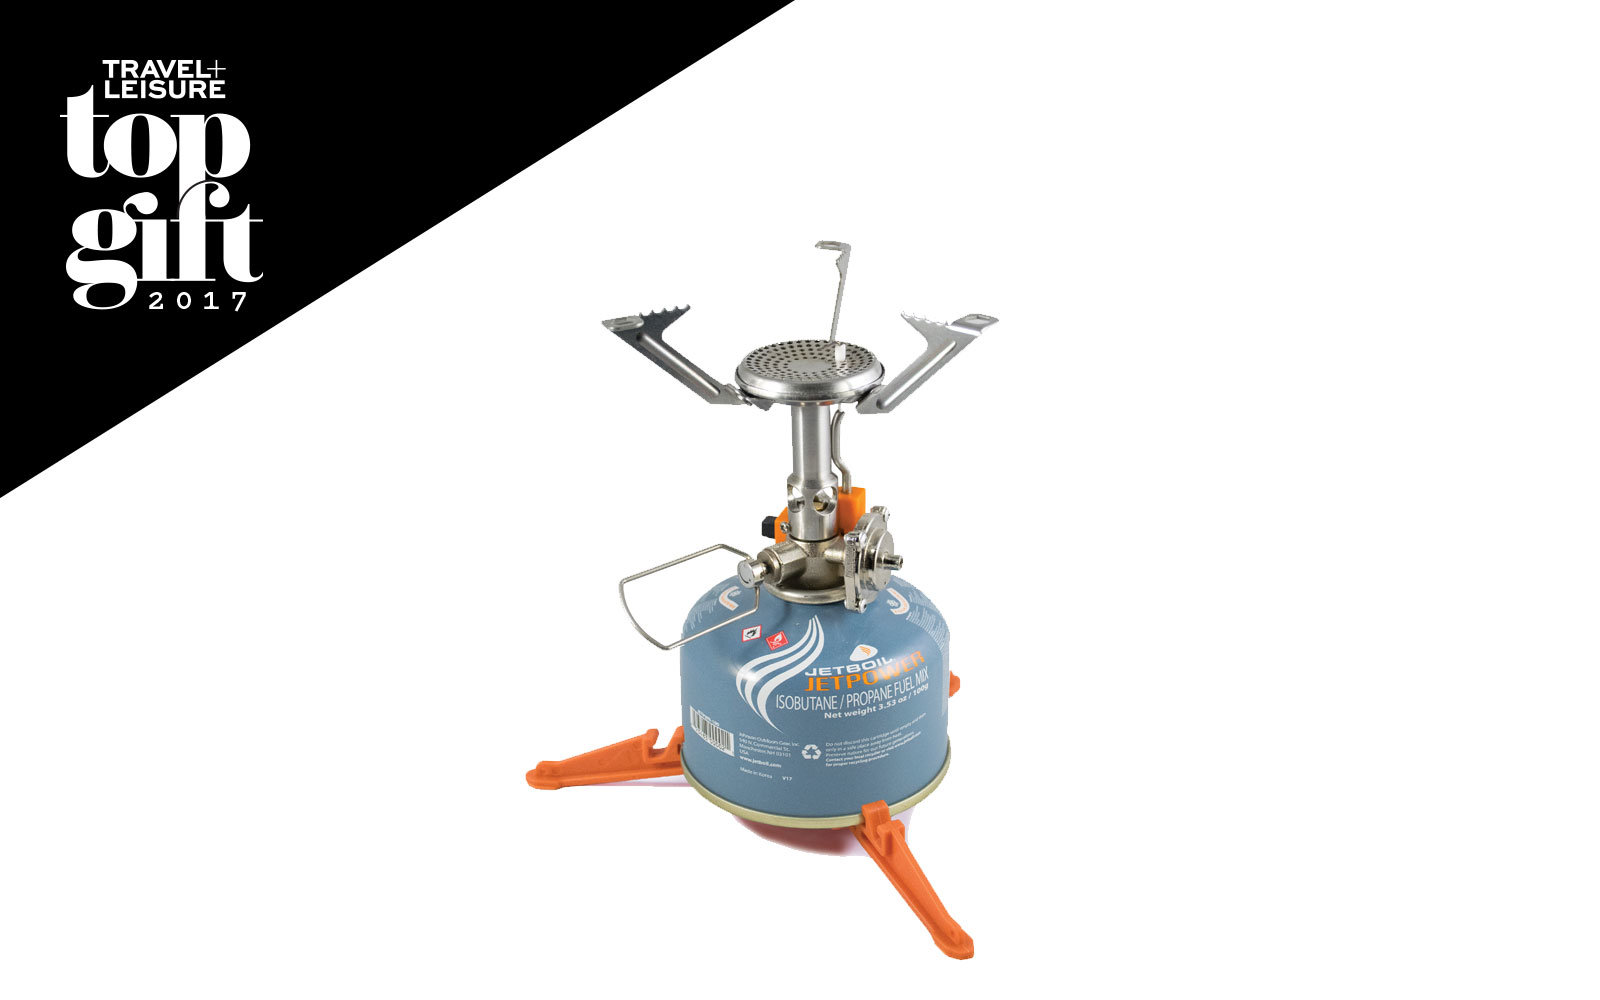 Jetboil jet power stove